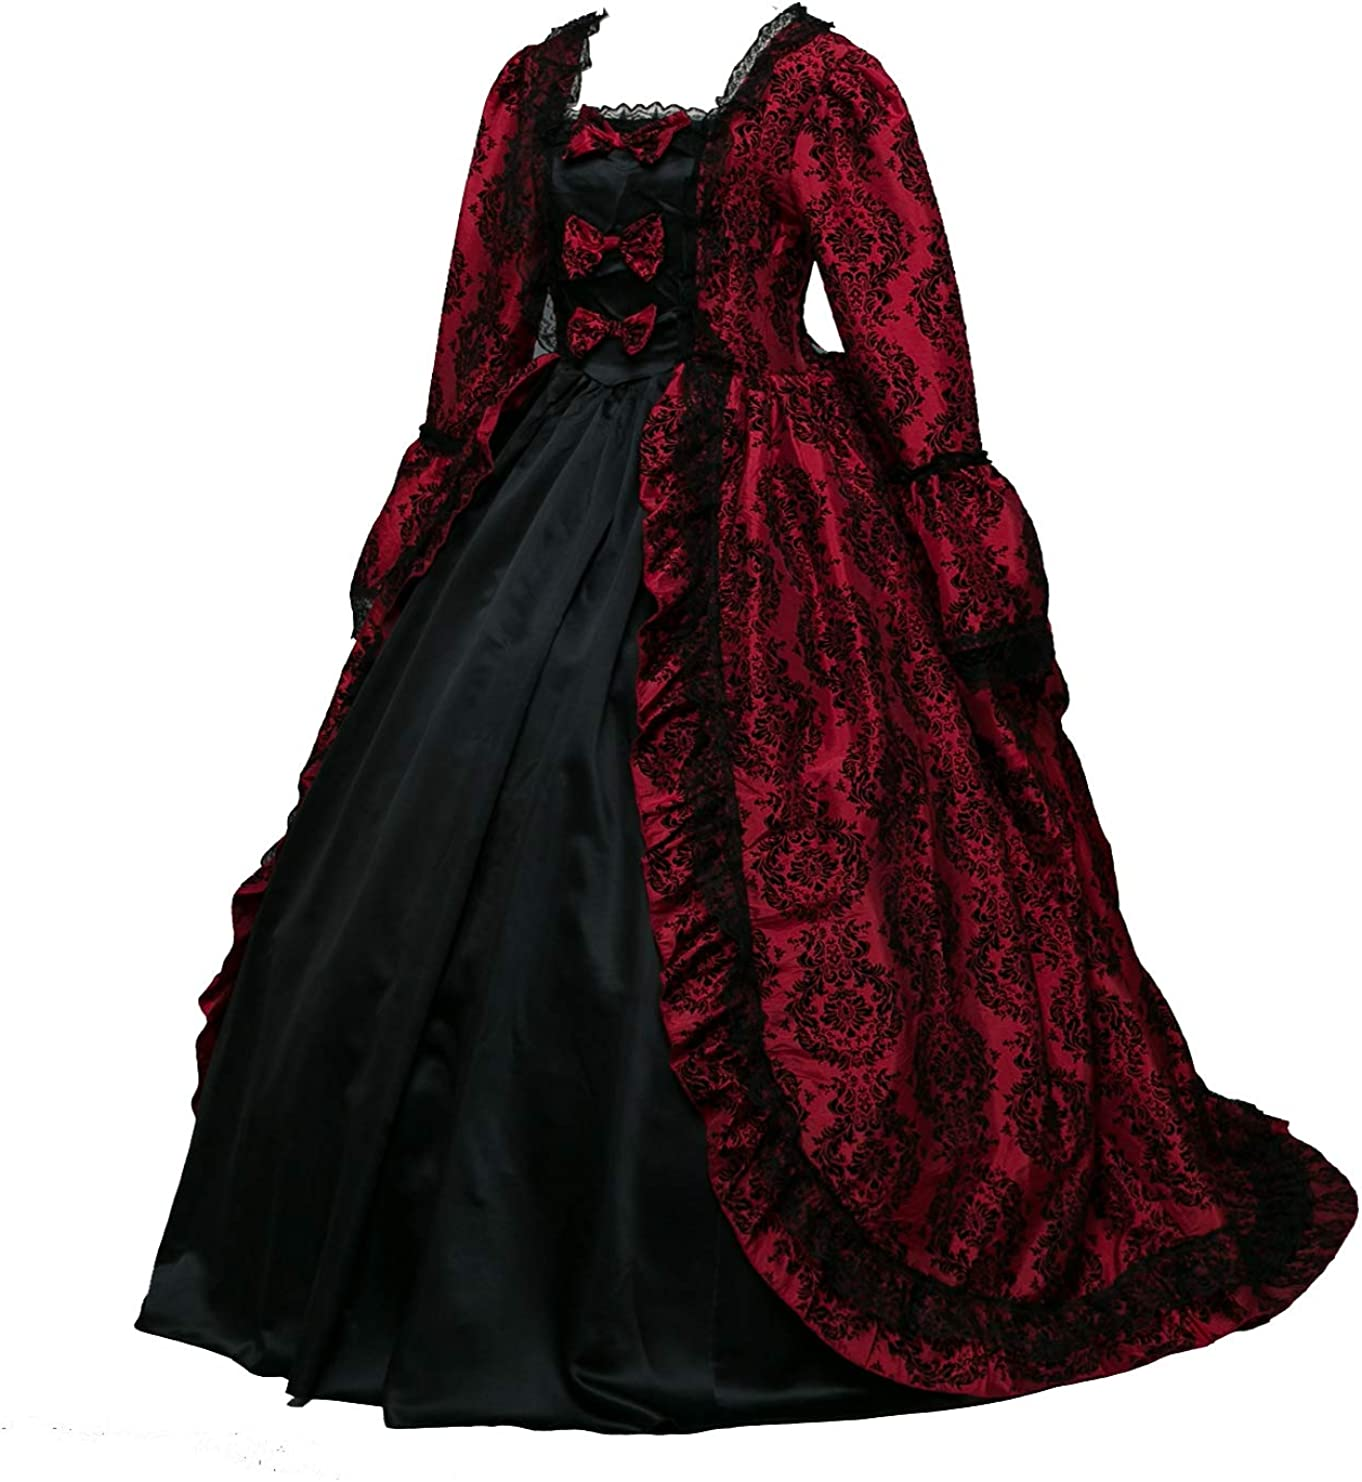 Amazon Com Suky Women S Elegant Recoco Victorian Dress Costume Ball Gowns Rococo Ball Gown Gothic Victorian Dress Costume Burgundy Clothing